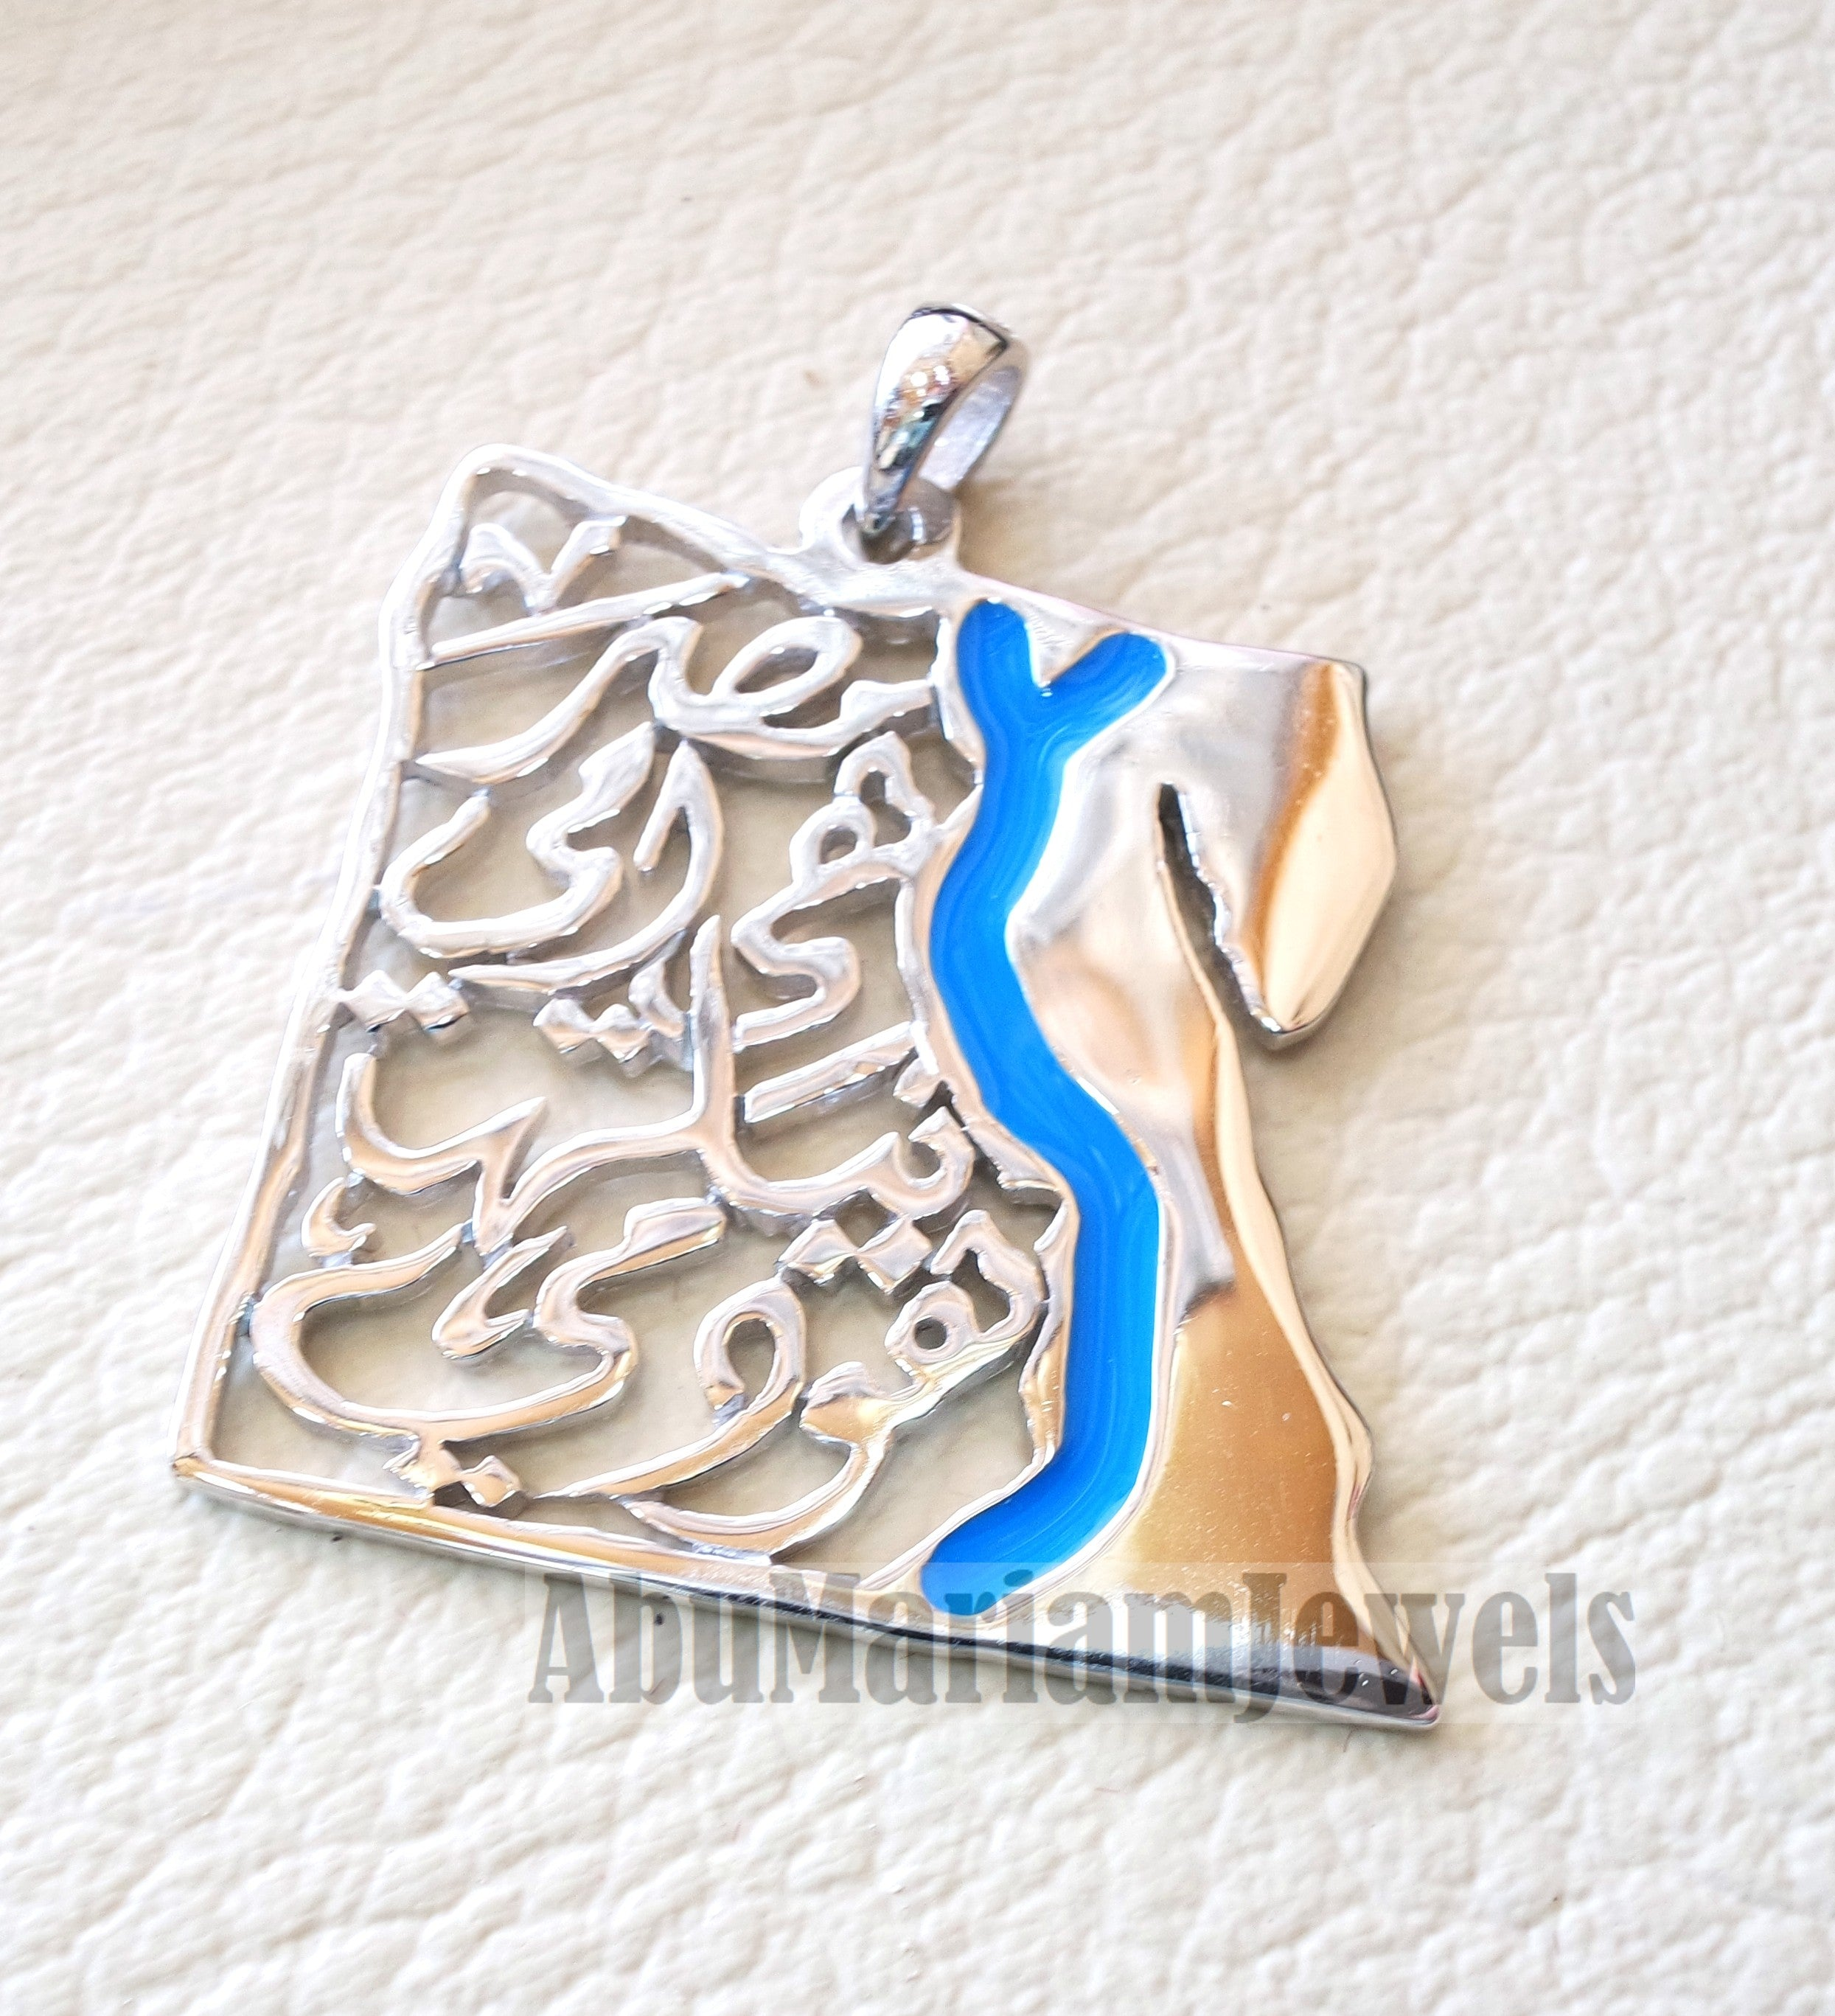 Egypt map pendant traditional verse sterling silver 925 calligraphy blue enamel jewelry arabic fast shipping خريطة مصر